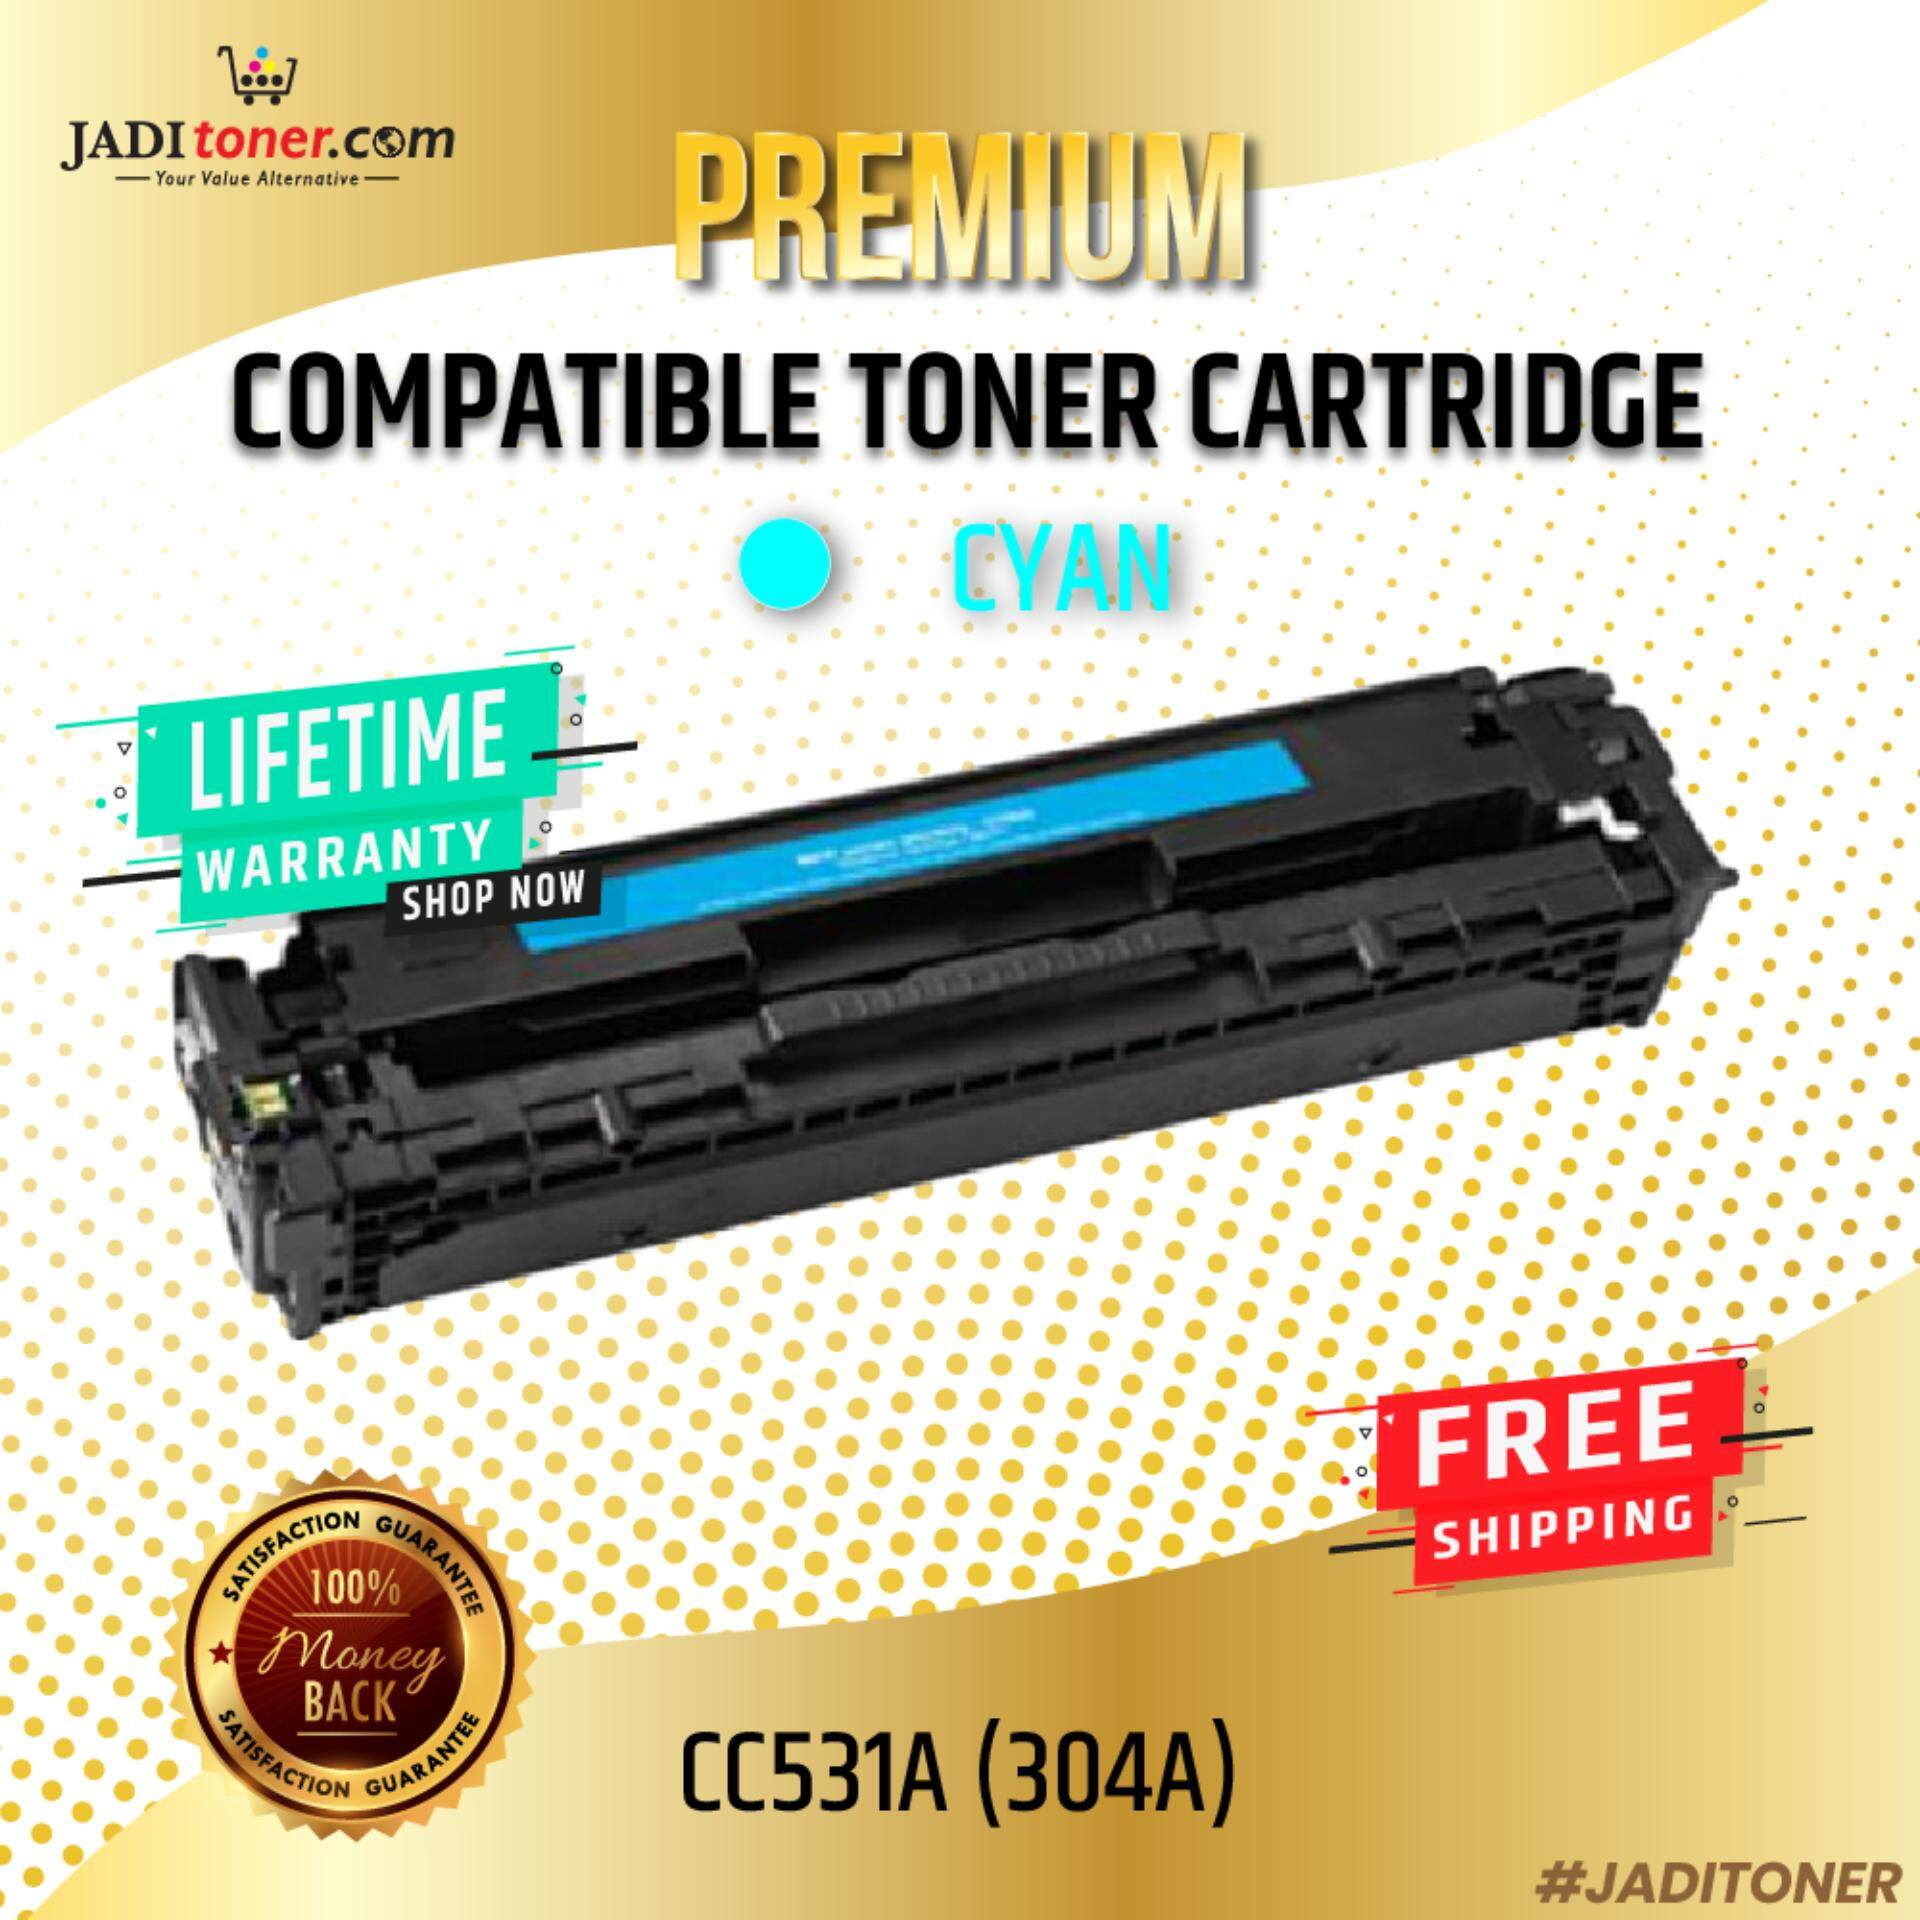 Compatible CC531A 304A Cyan Laser Toner Cartridge For HP Color LaserJet CP2020 / HP Color LaserJet Pro CP2024 / HP Color LaserJet Pro CP2025 / HP Color LaserJet Pro CP2026 / HP Color LaserJet Pro CP2027 / HP Color LaserJet Pro CM2320 MFP HP CC531 531A